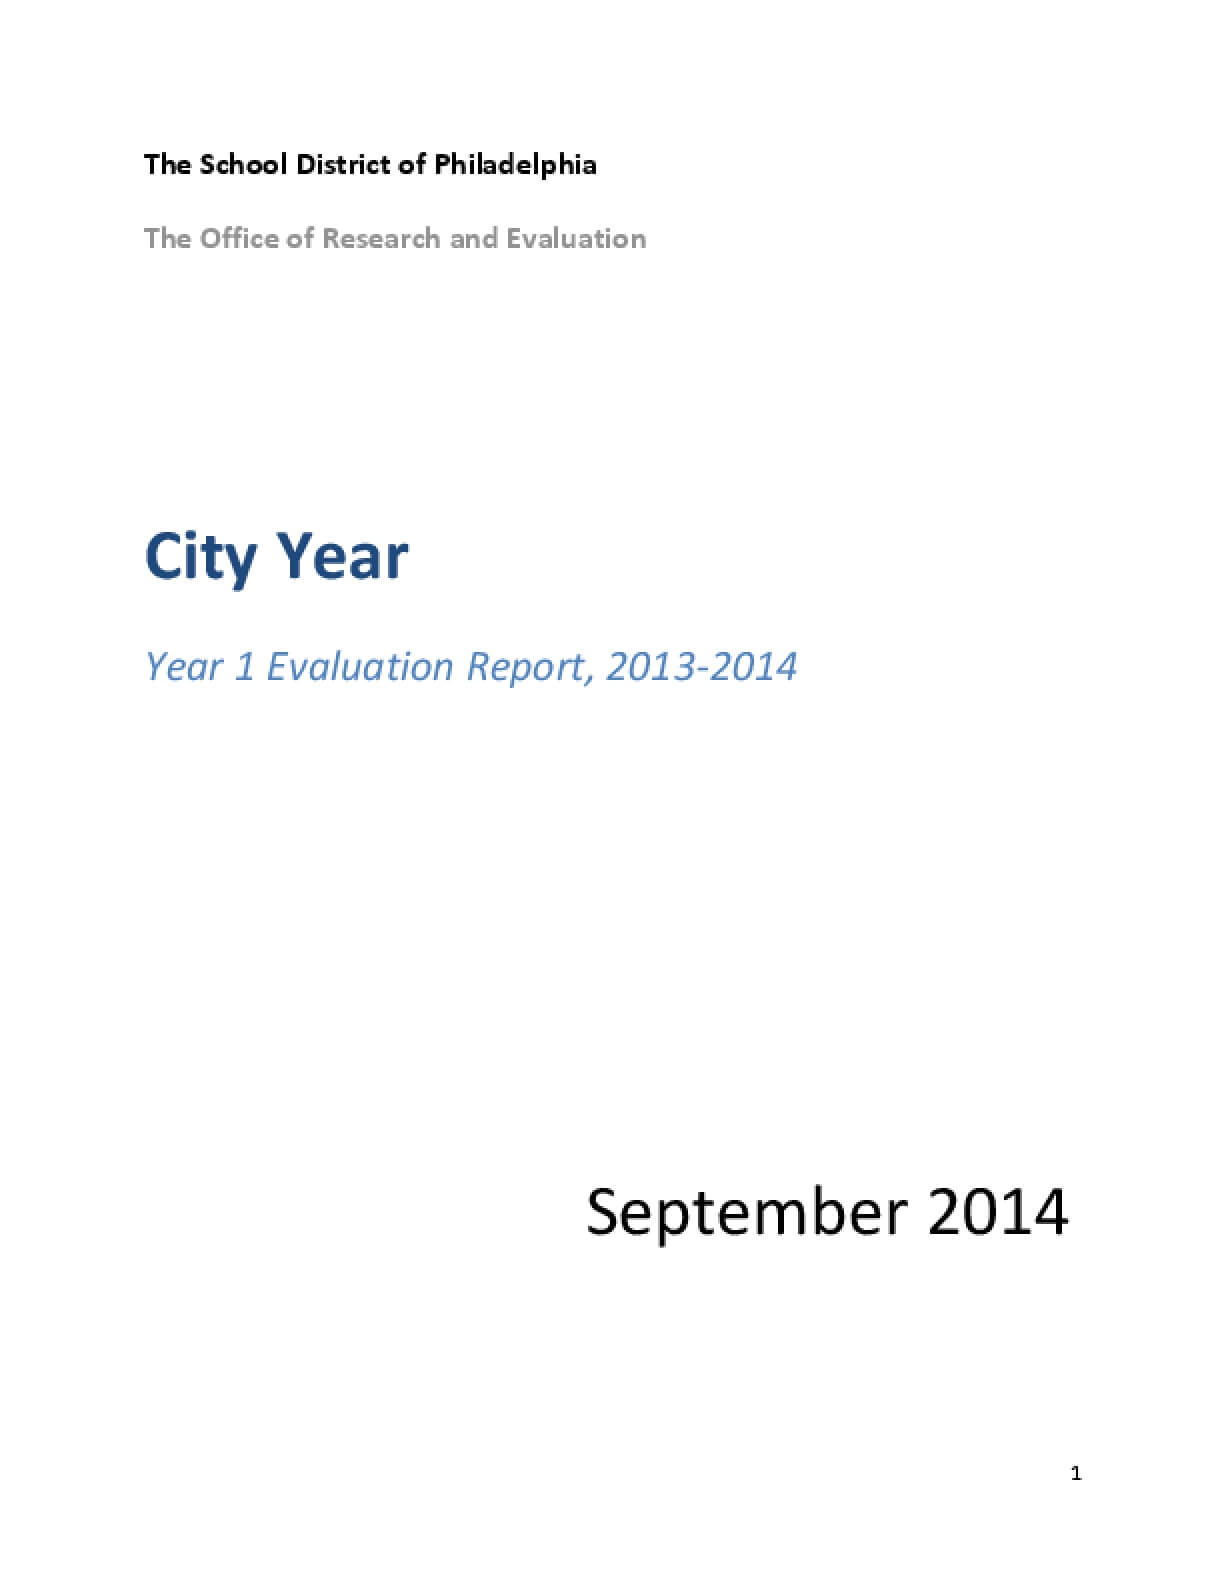 City Year: Year 1 Evaluation Report, 2013-2014